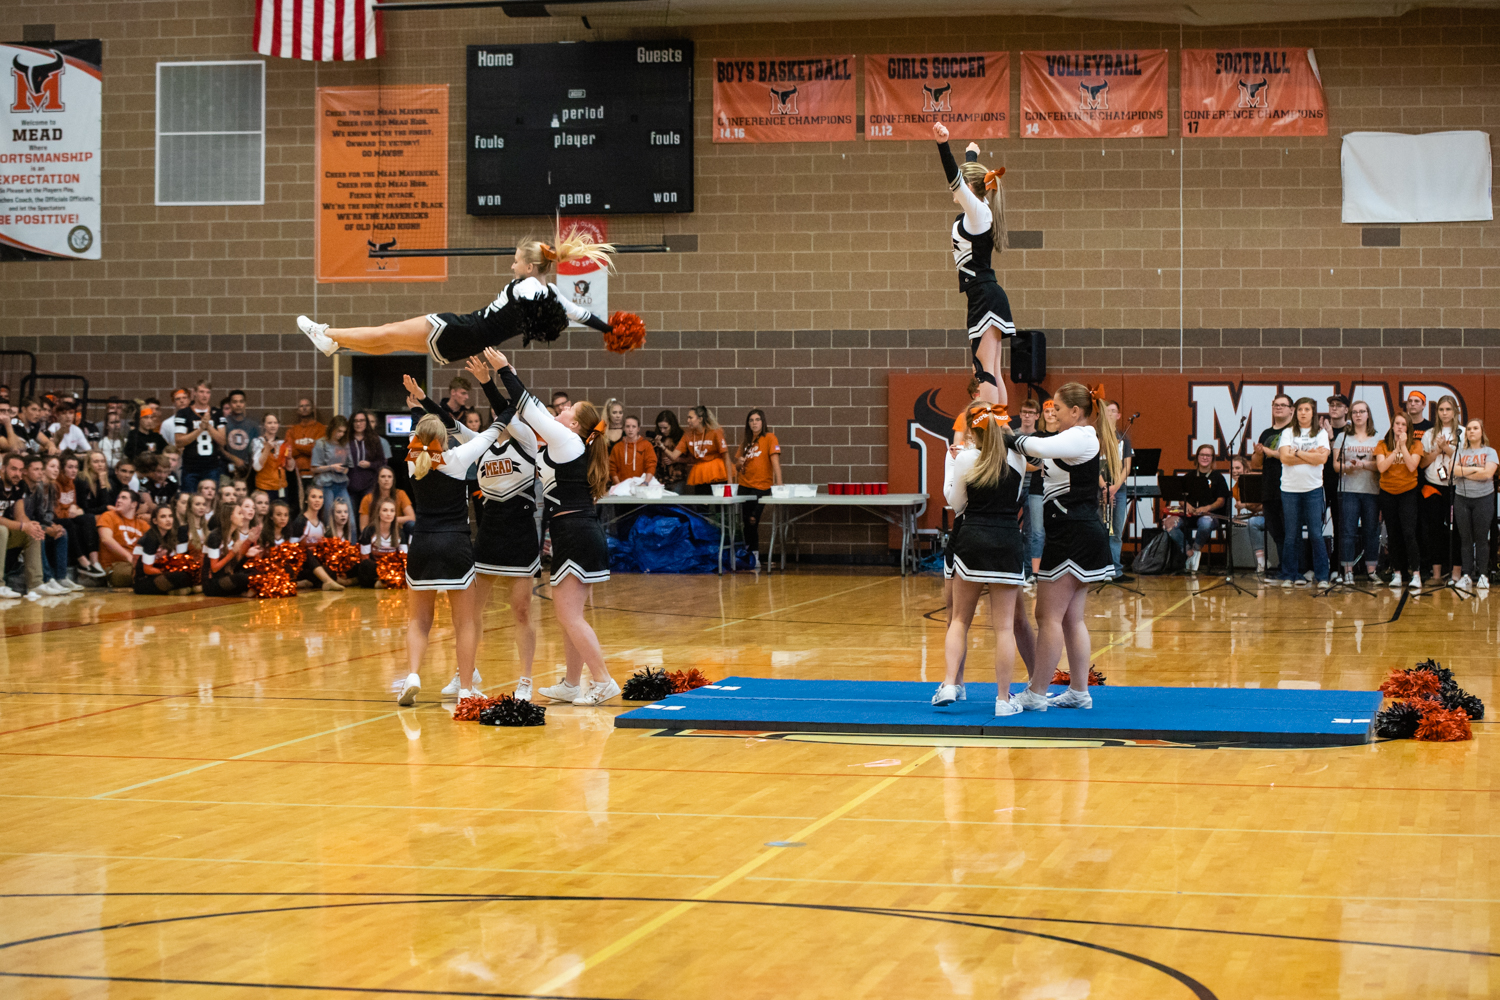 Cheer+ends+their+routine+with+spectacular+ariels+facing+the+upperclassmen.